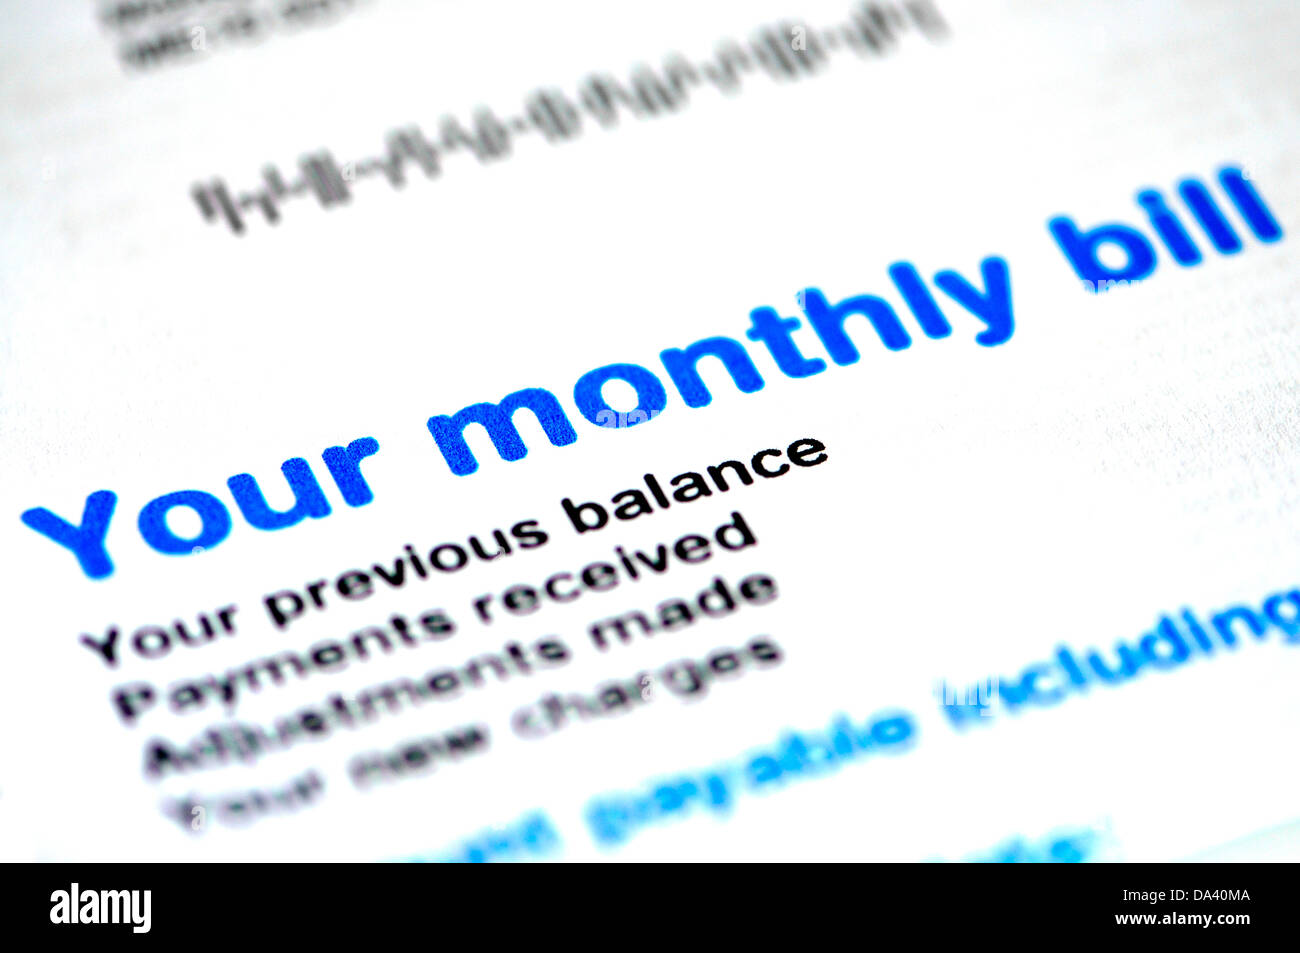 Monthly telephone bill - Stock Image